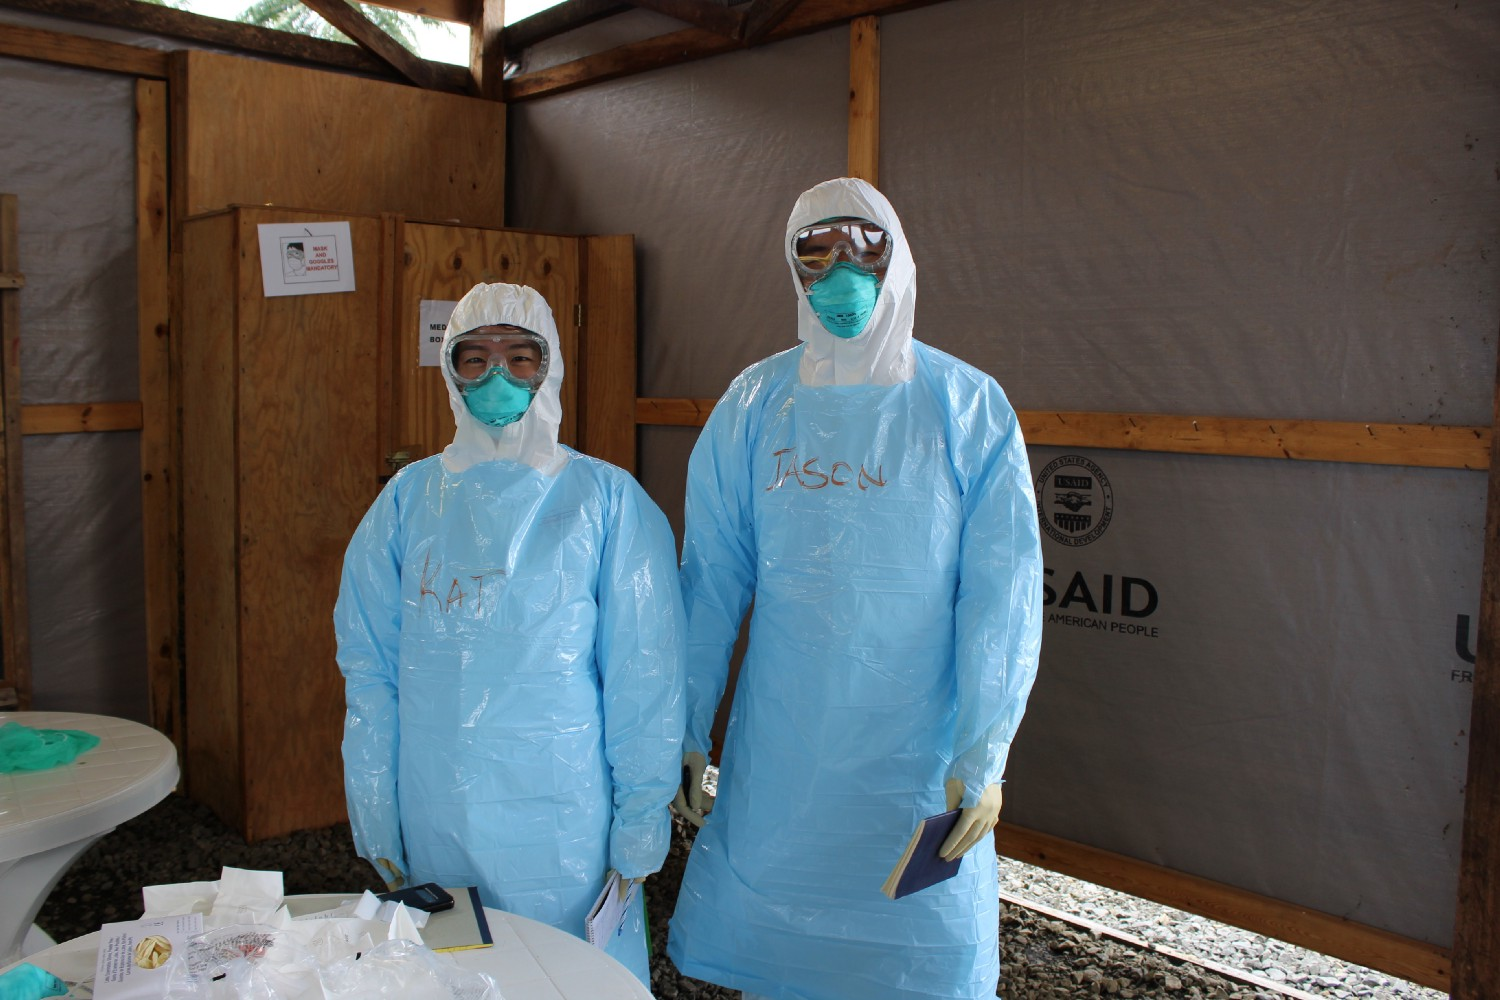 Katherine Jin and Jason Kang wear personal protective equipment at an Ebola Treatment Unit in Liberia. (Kevin Tyan)